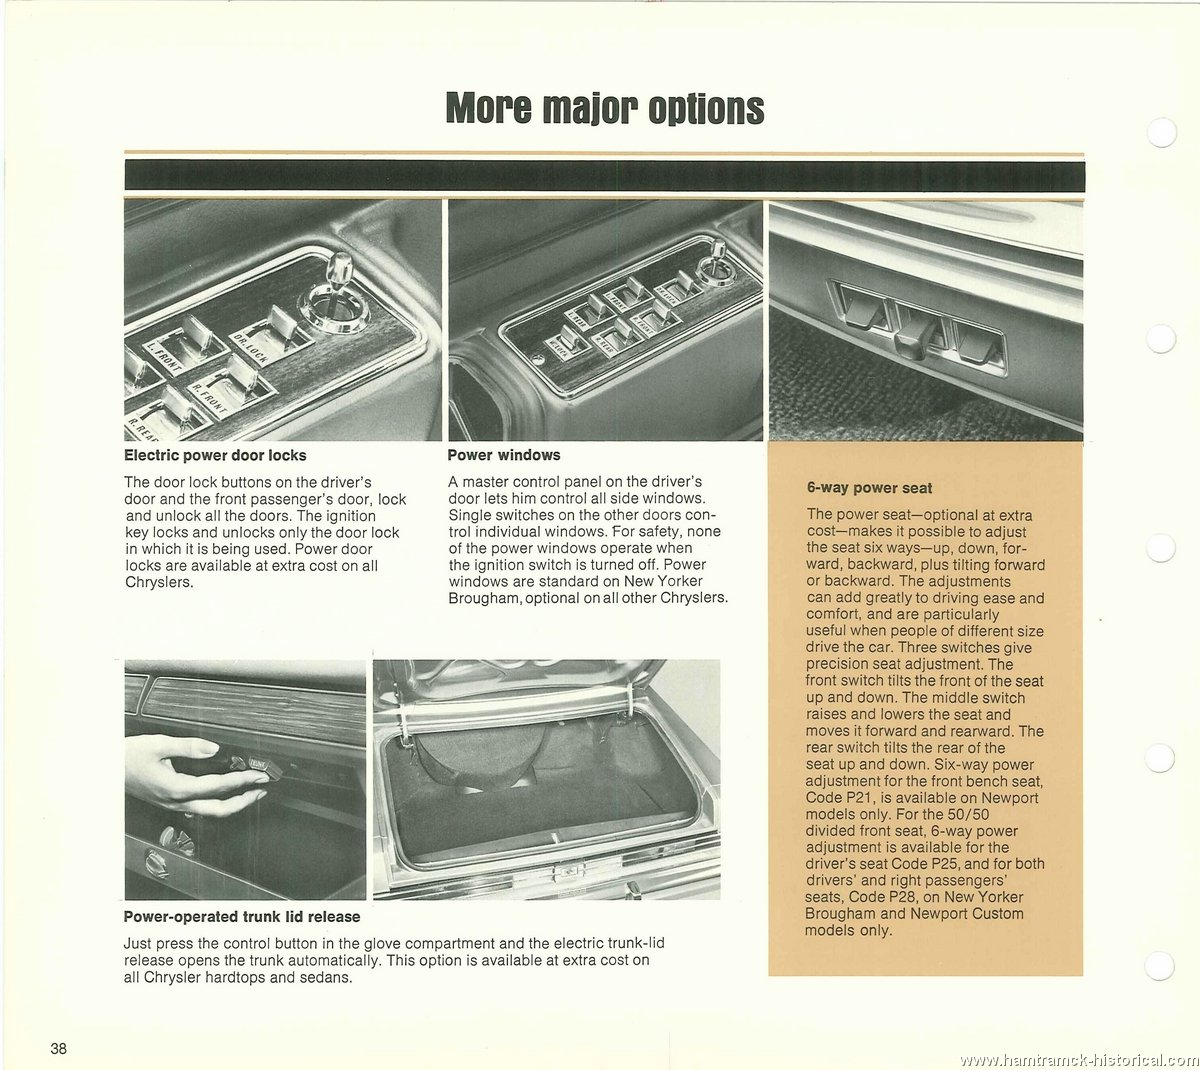 The 1970 Hamtramck Registry 1976 Chrysler Dealership Data Book Power Windows To Be Operated Only When Key Is On And For Image 76 Newport New Yorker 0014